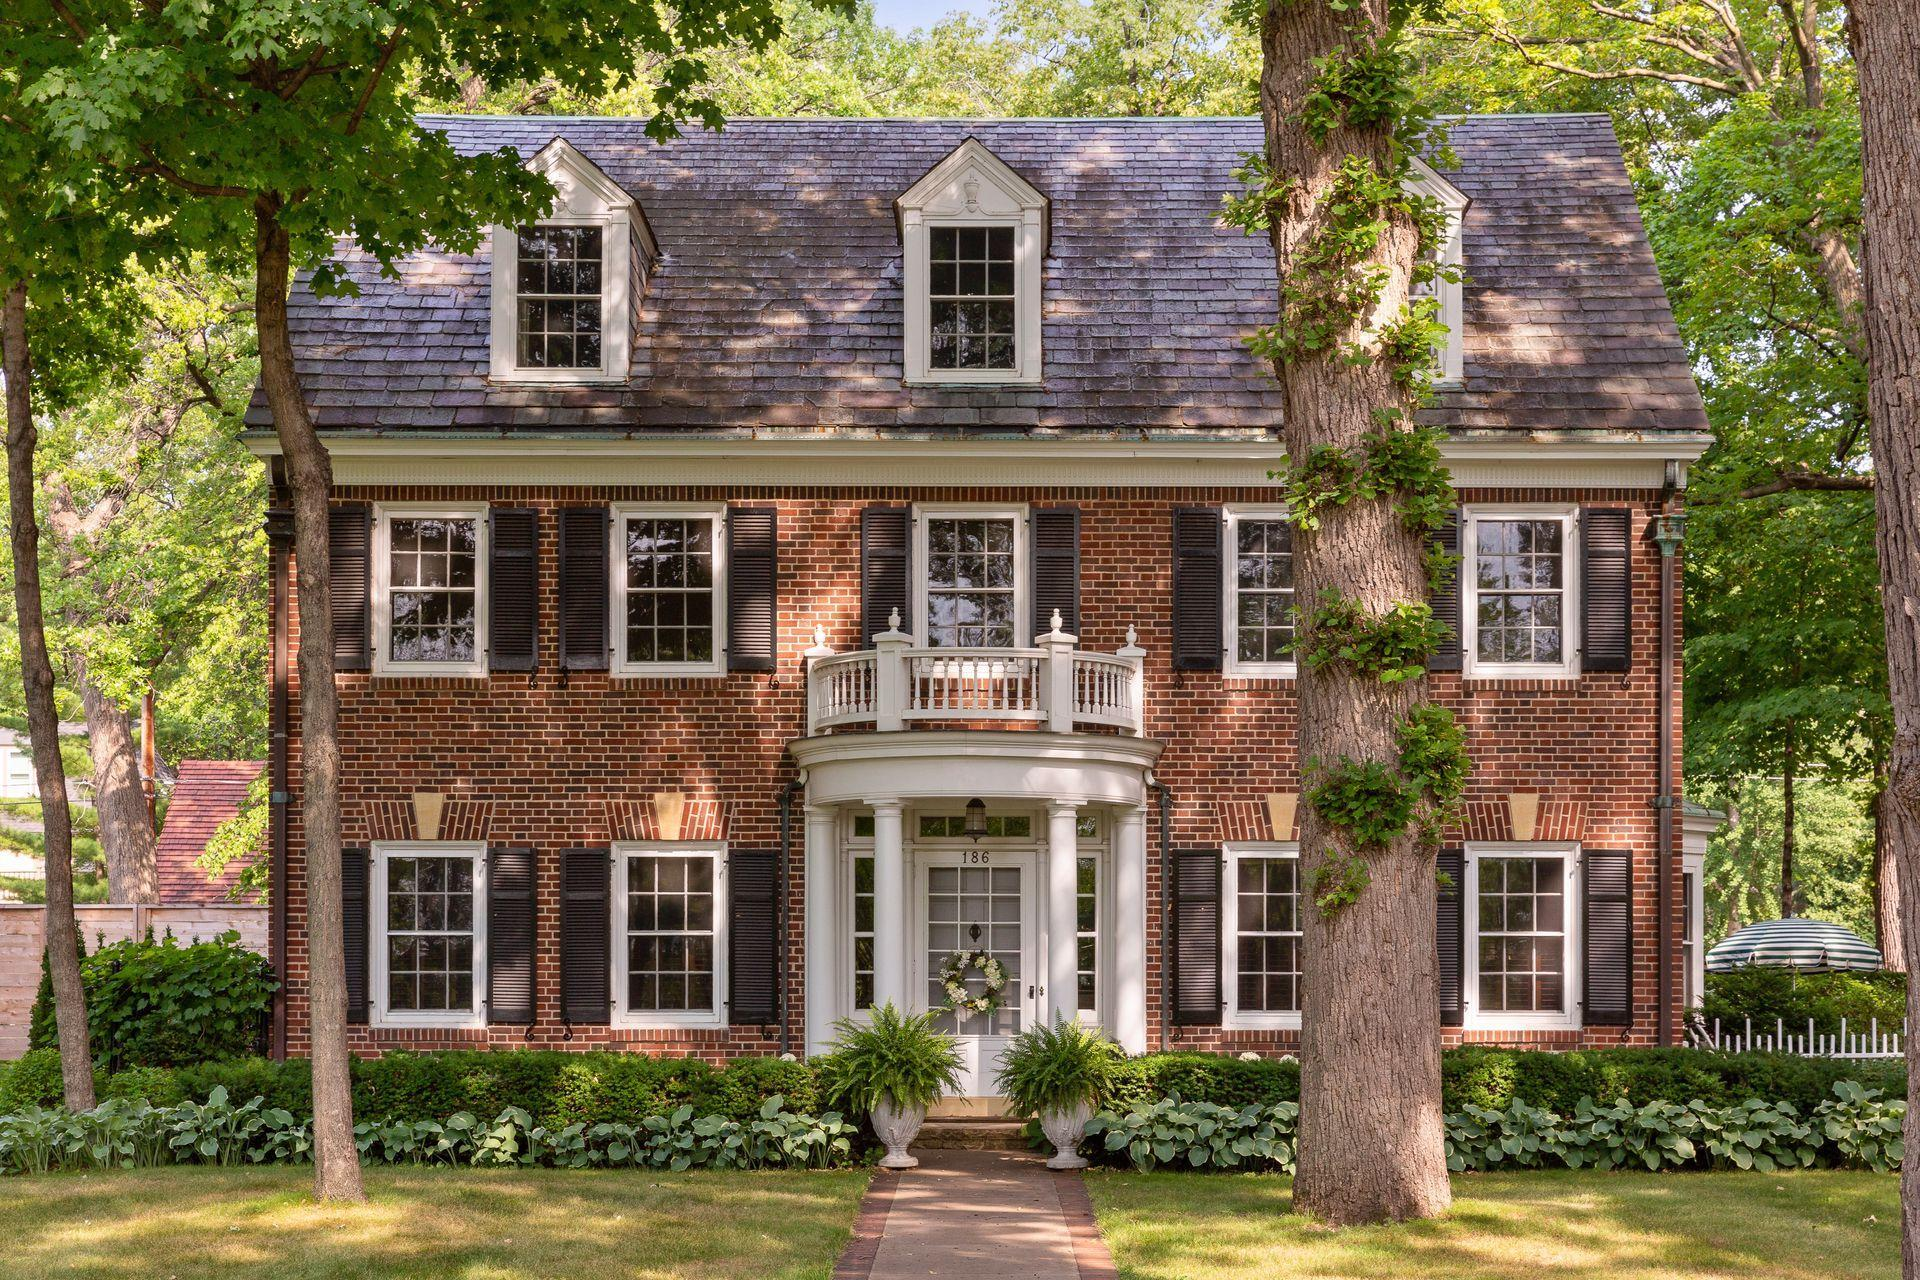 Welcome to this spectacular all-brick Georgian Revival on Mississippi River Boulevard, nestled among mature trees in an incredible setting with breathtaking panoramic views!